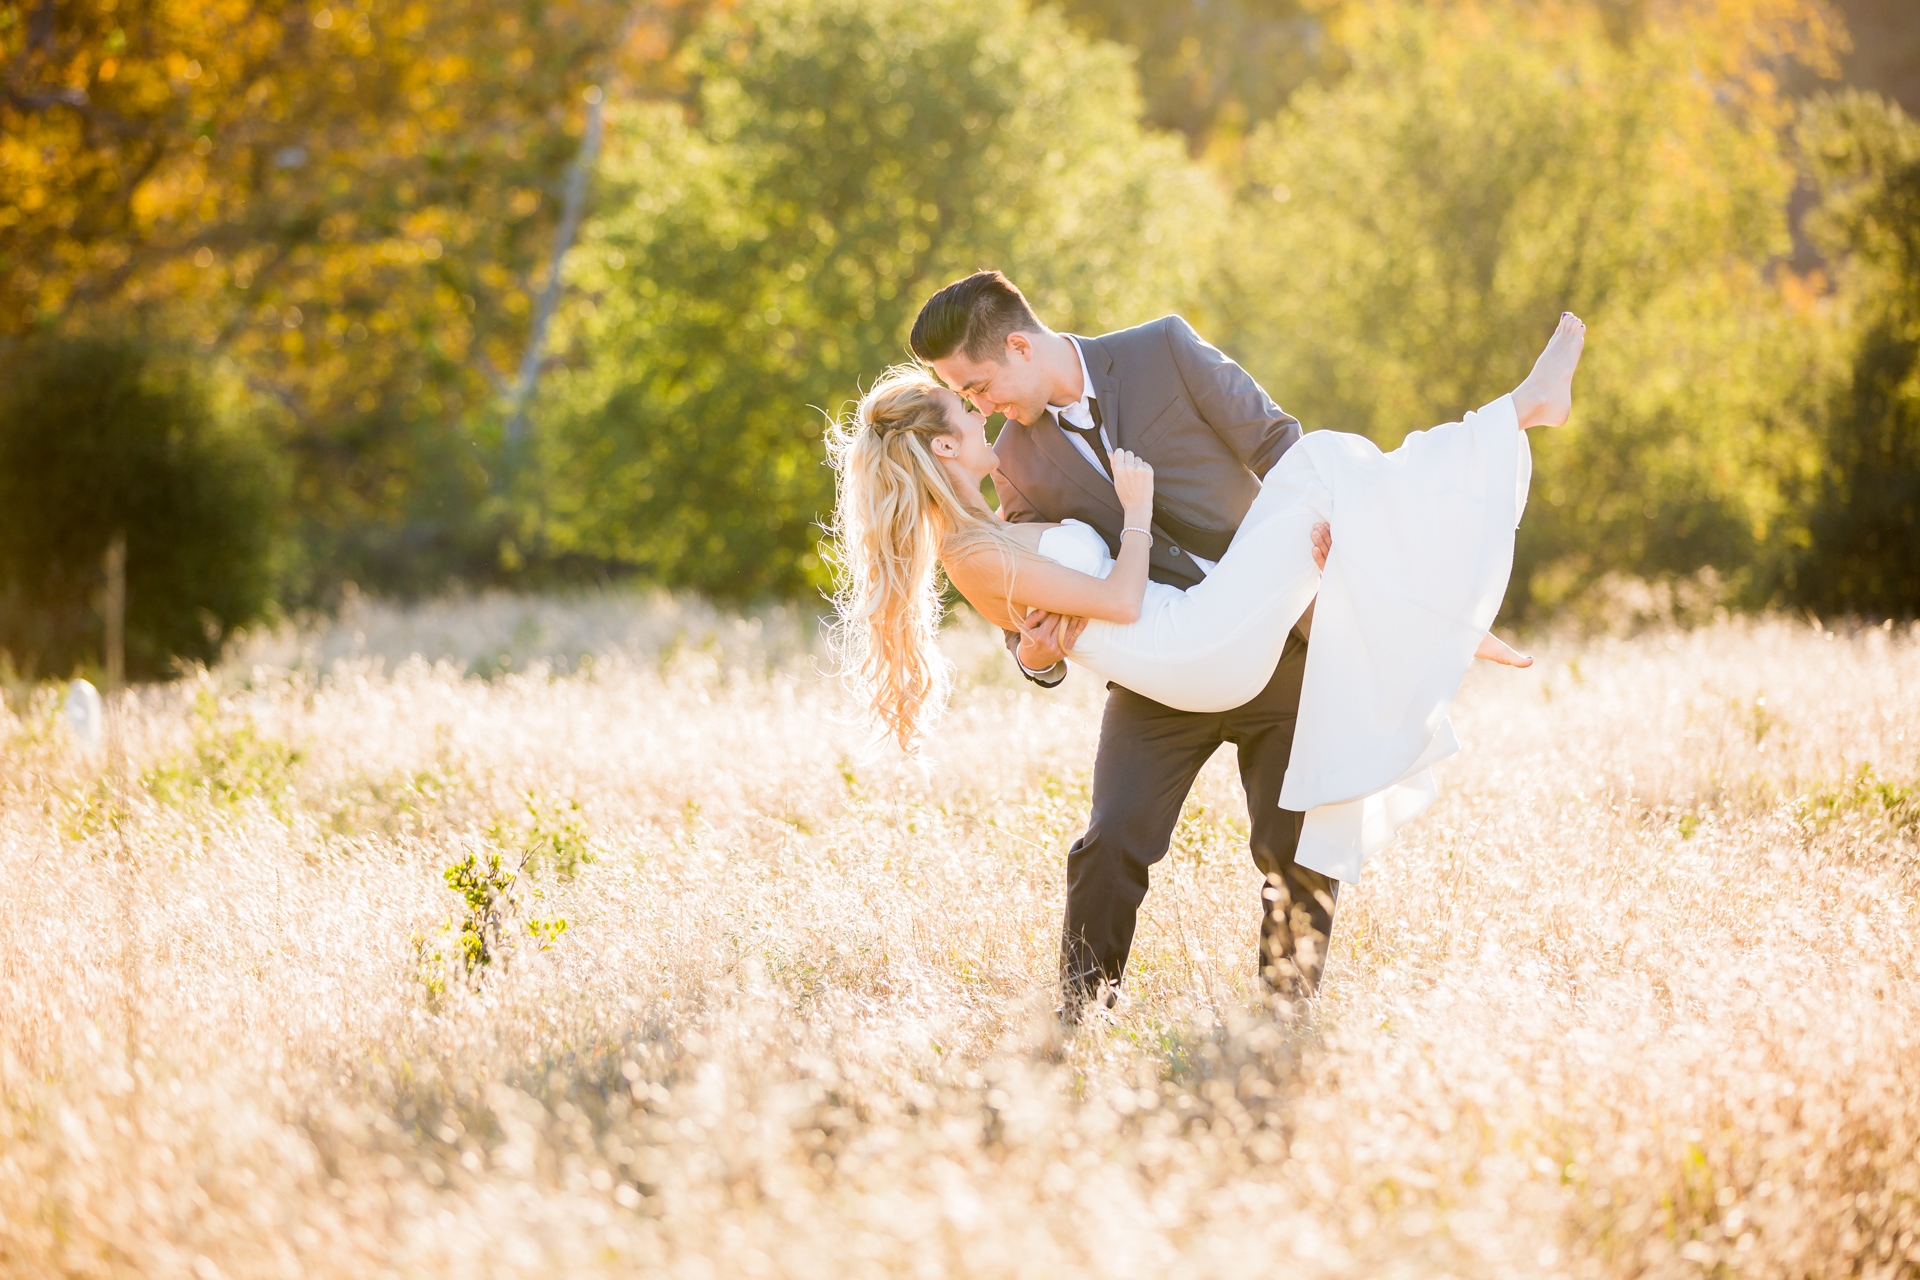 00-James-Dilley-Preserve-Orange-County-Engagement-Photography